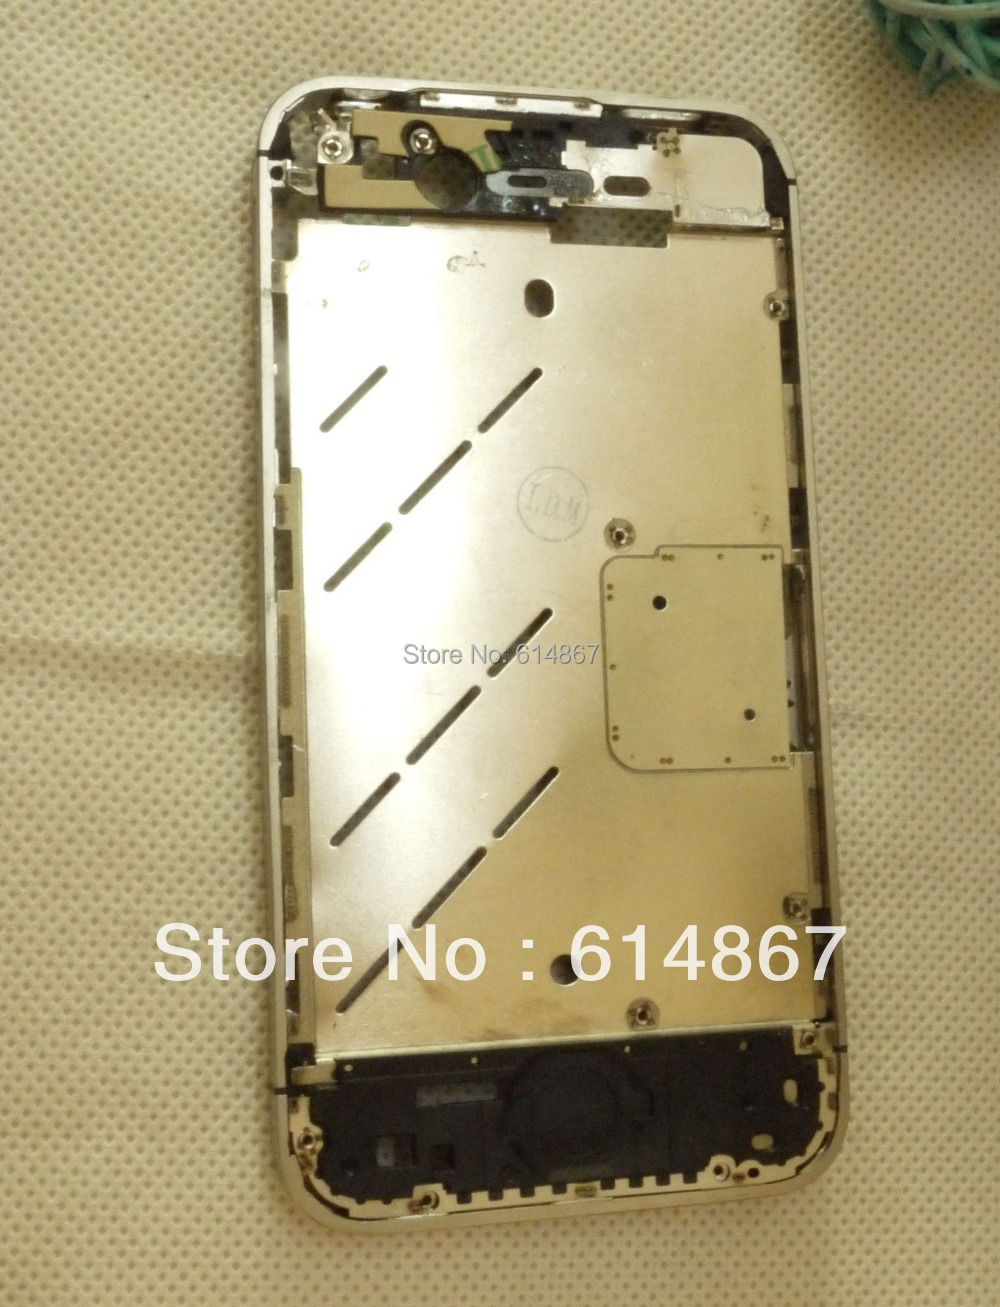 Midframe Middle Plate Board iPhone 4 4G Original Frame Chassis MOQ:1 - New Oriental Int'L Co.,Ltd Shop store